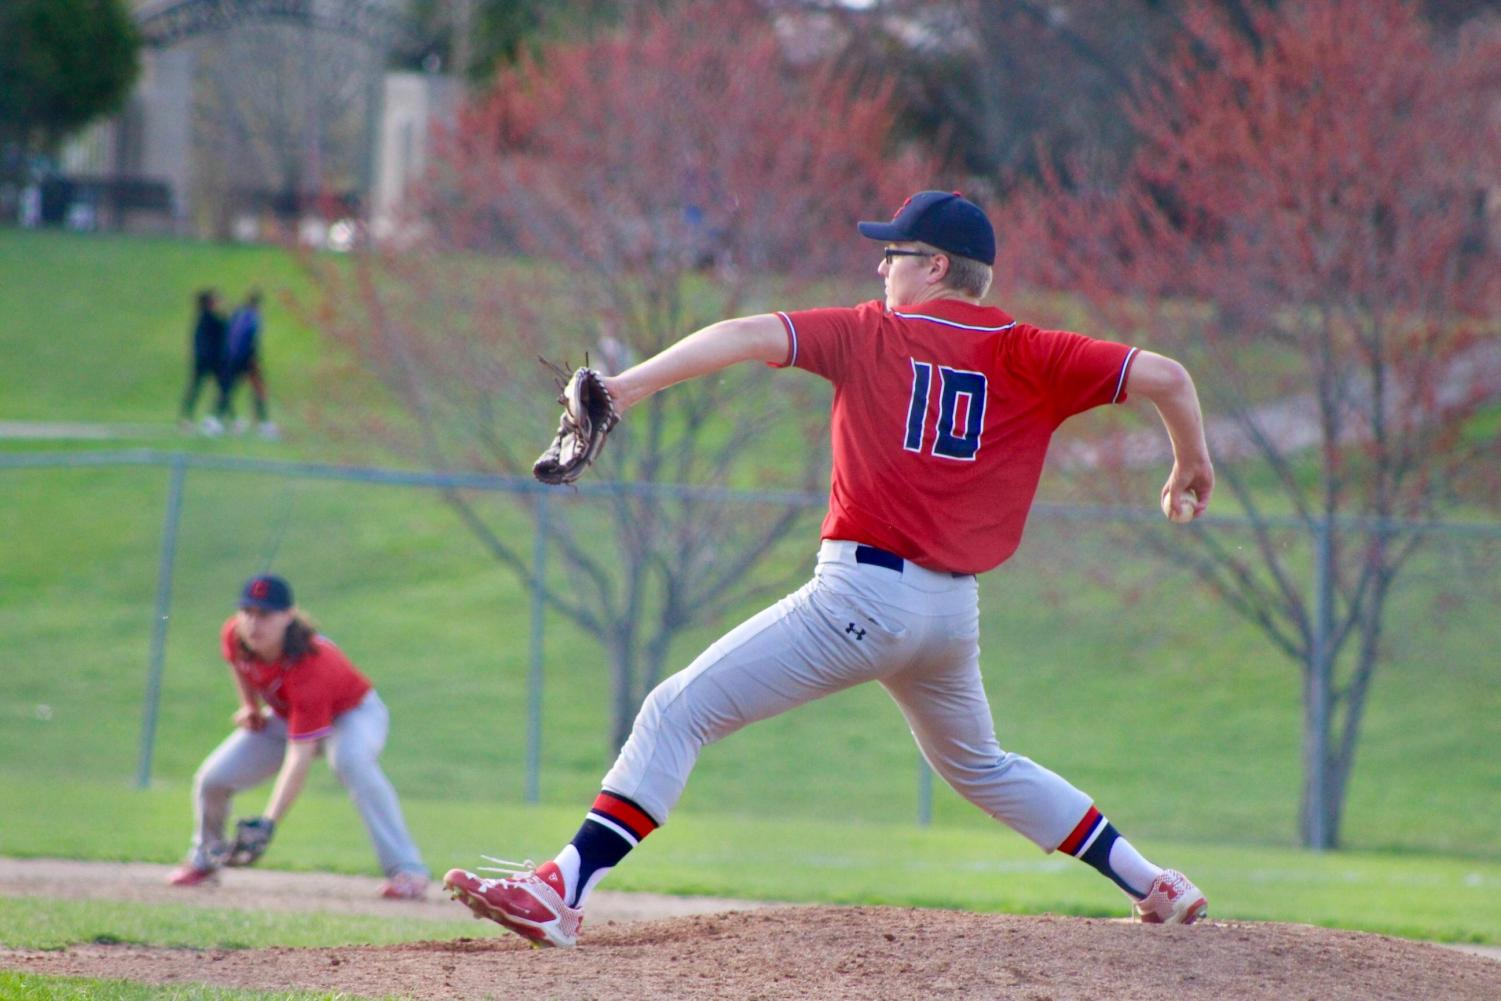 Senior Chad Stevens fires a pitch. Photo courtesy the yearbook staff.